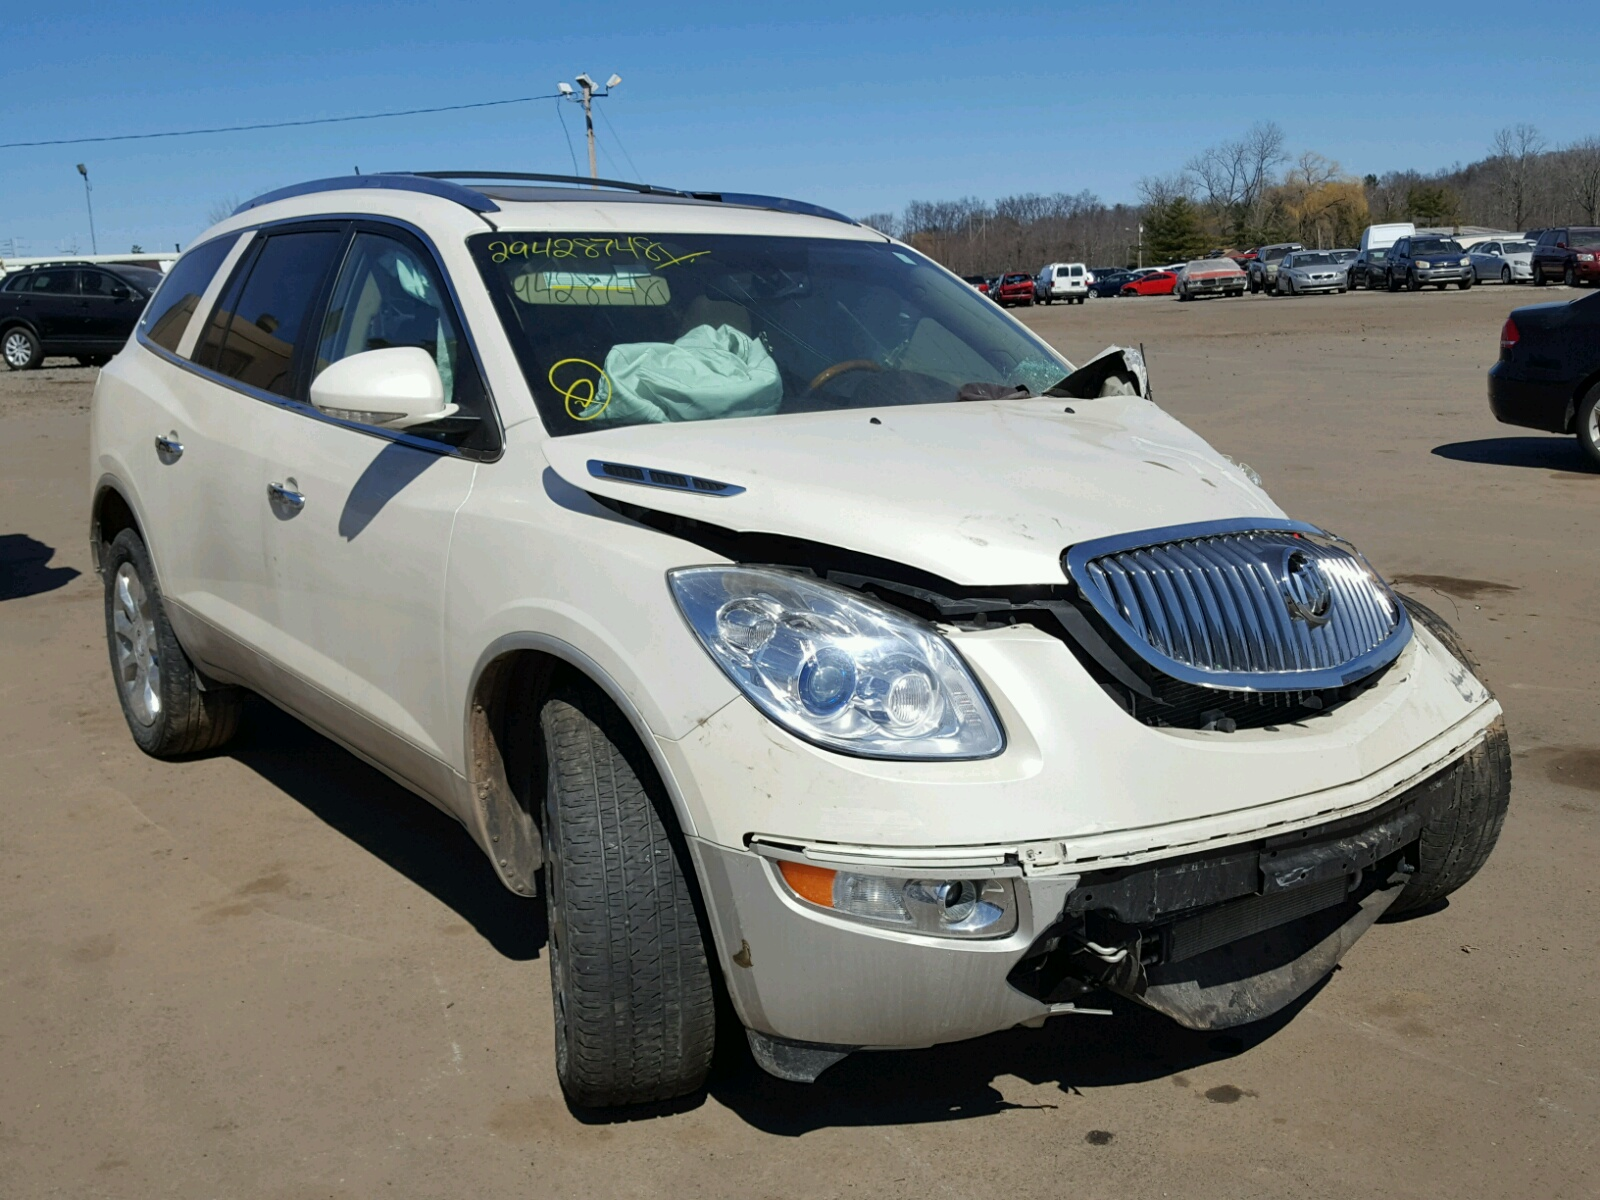 5gakvcedxbj282668 2011 white buick enclave cx on sale in ct 5gakvcedxbj282668 2011 buick enclave cx 36l left view publicscrutiny Images